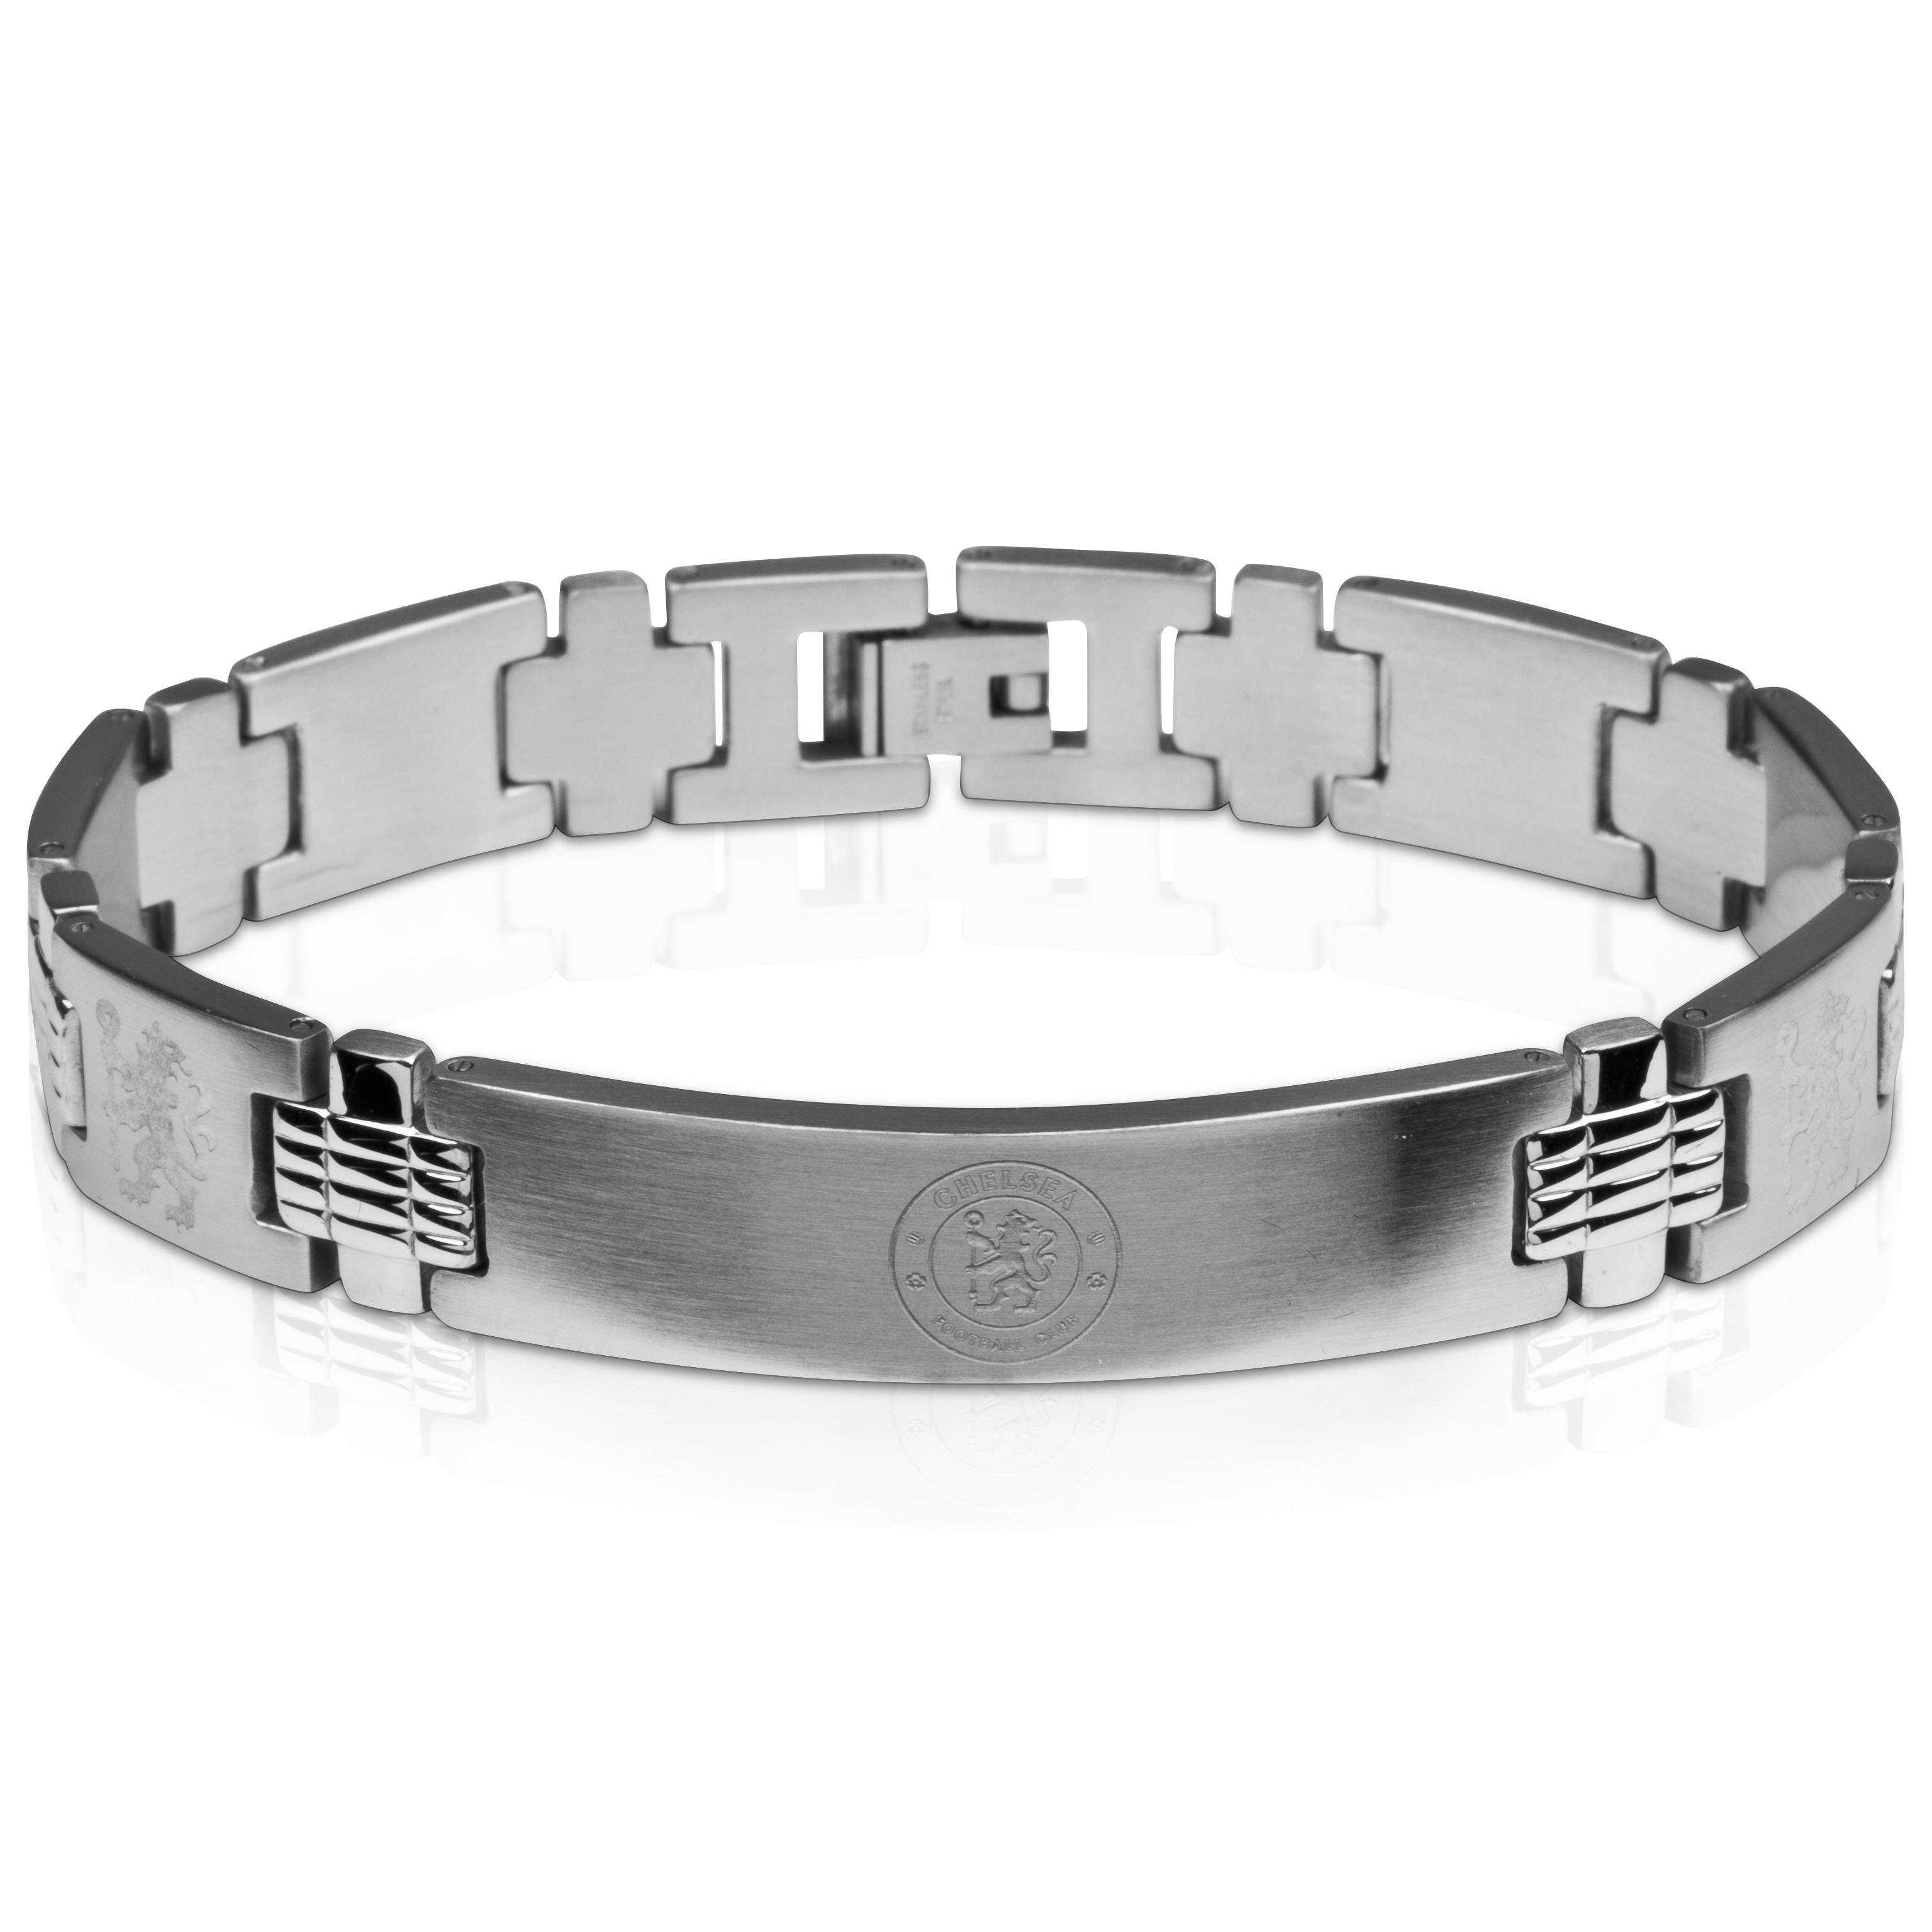 Chelsea Crest with Multi Lion Bracelet - Stainless Steel